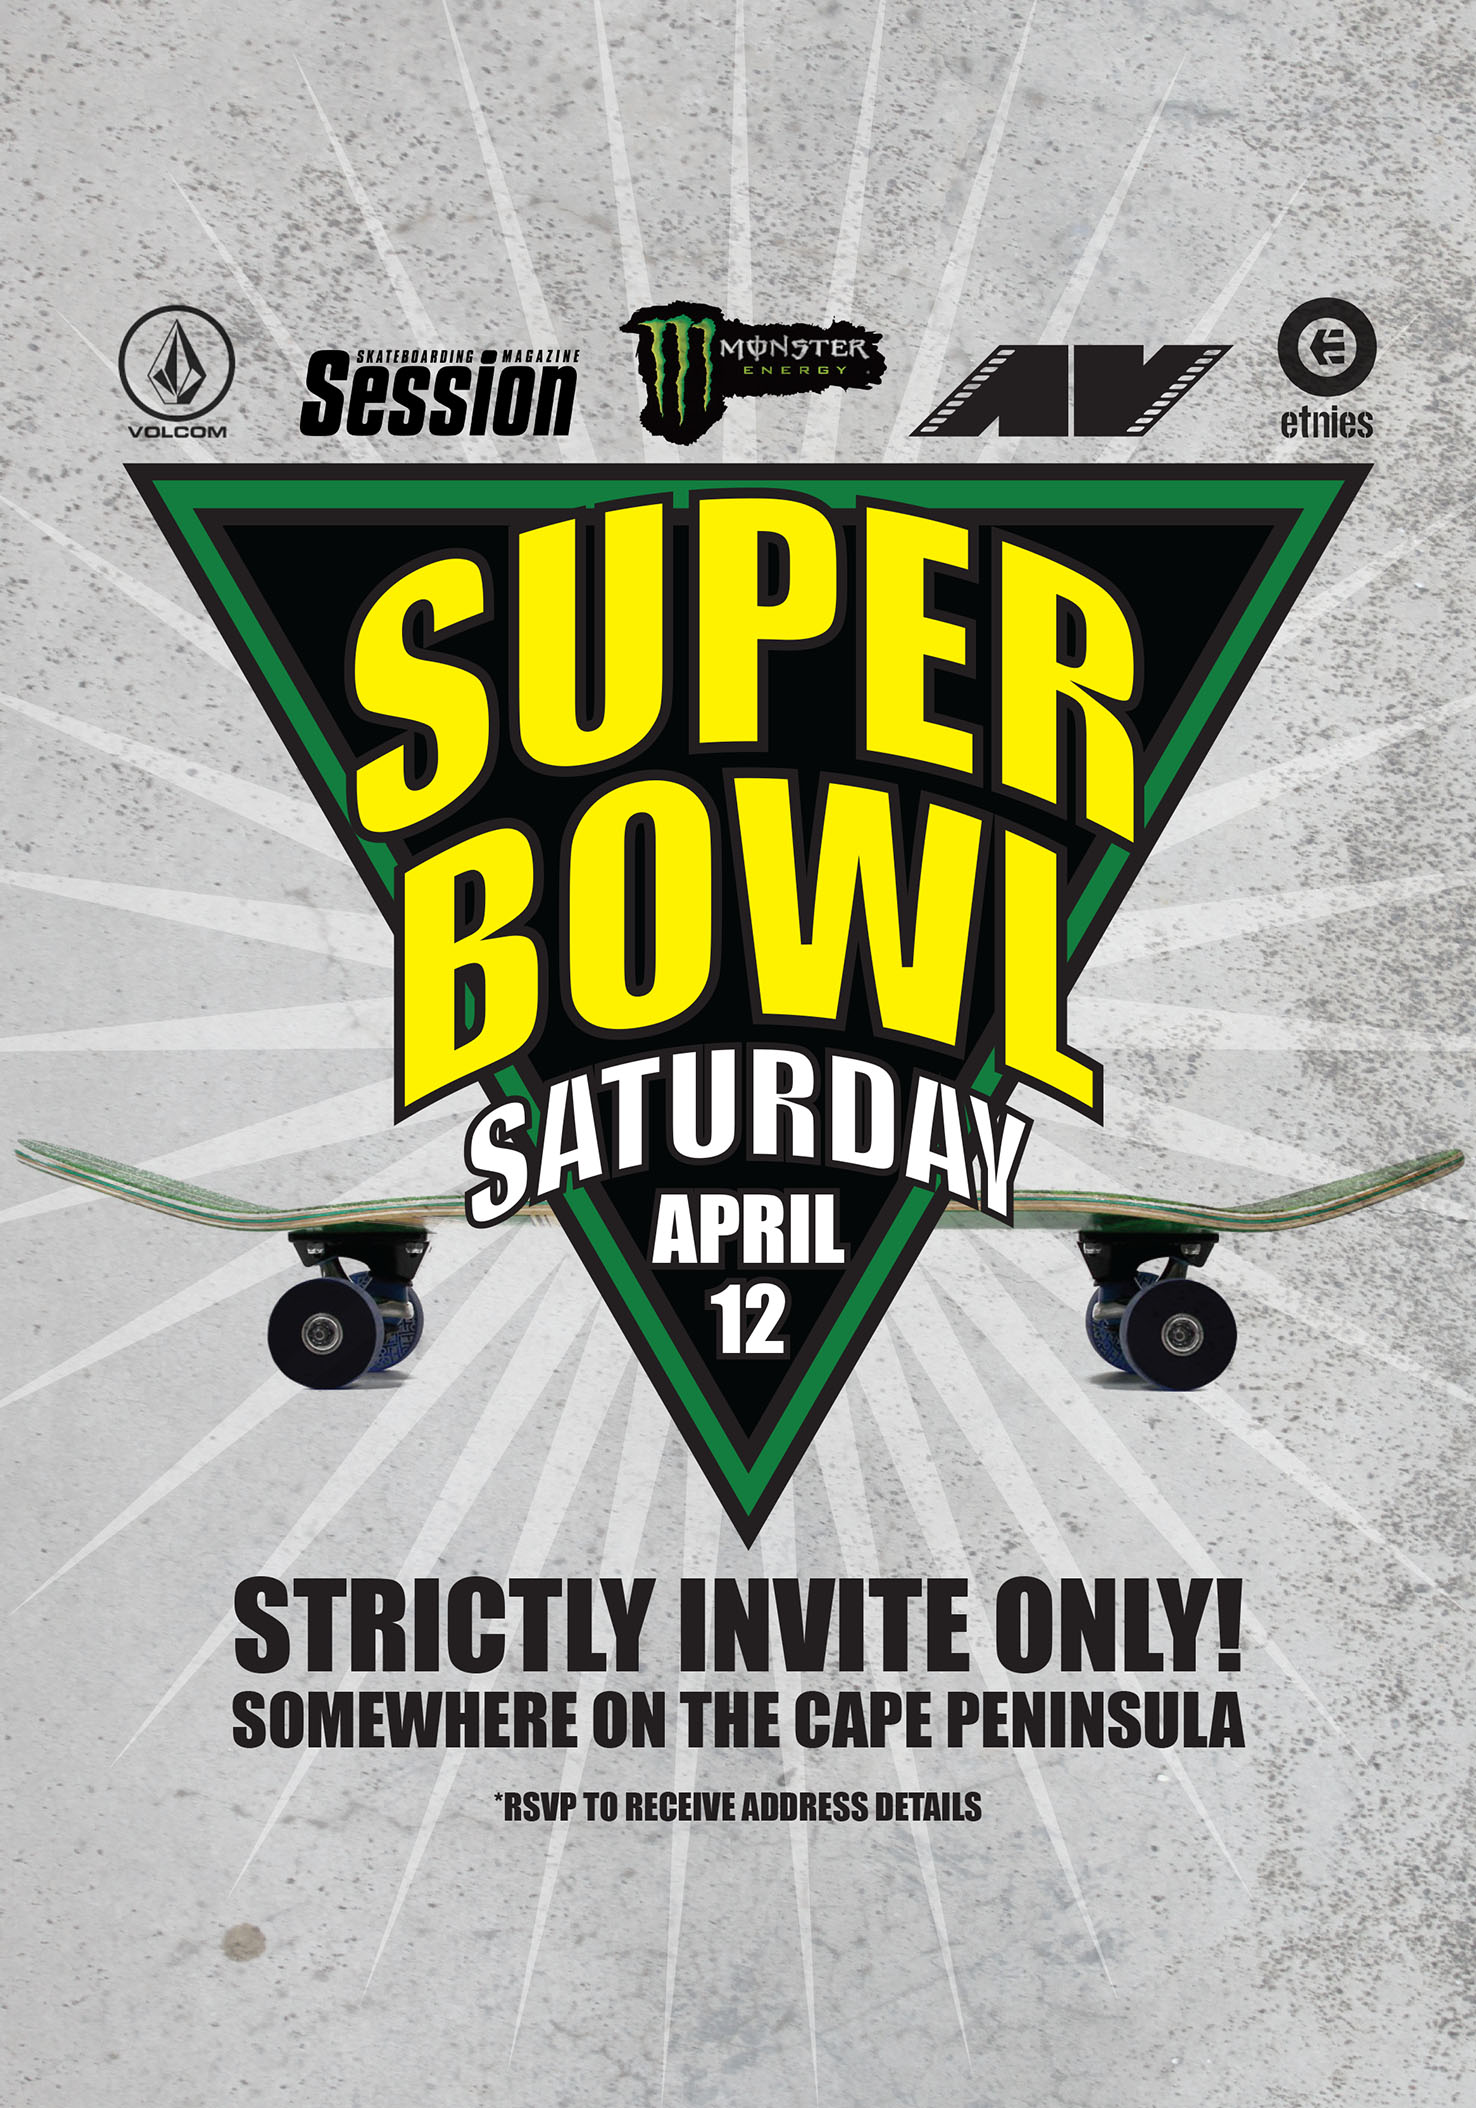 Suberbowl Saturday FLIER